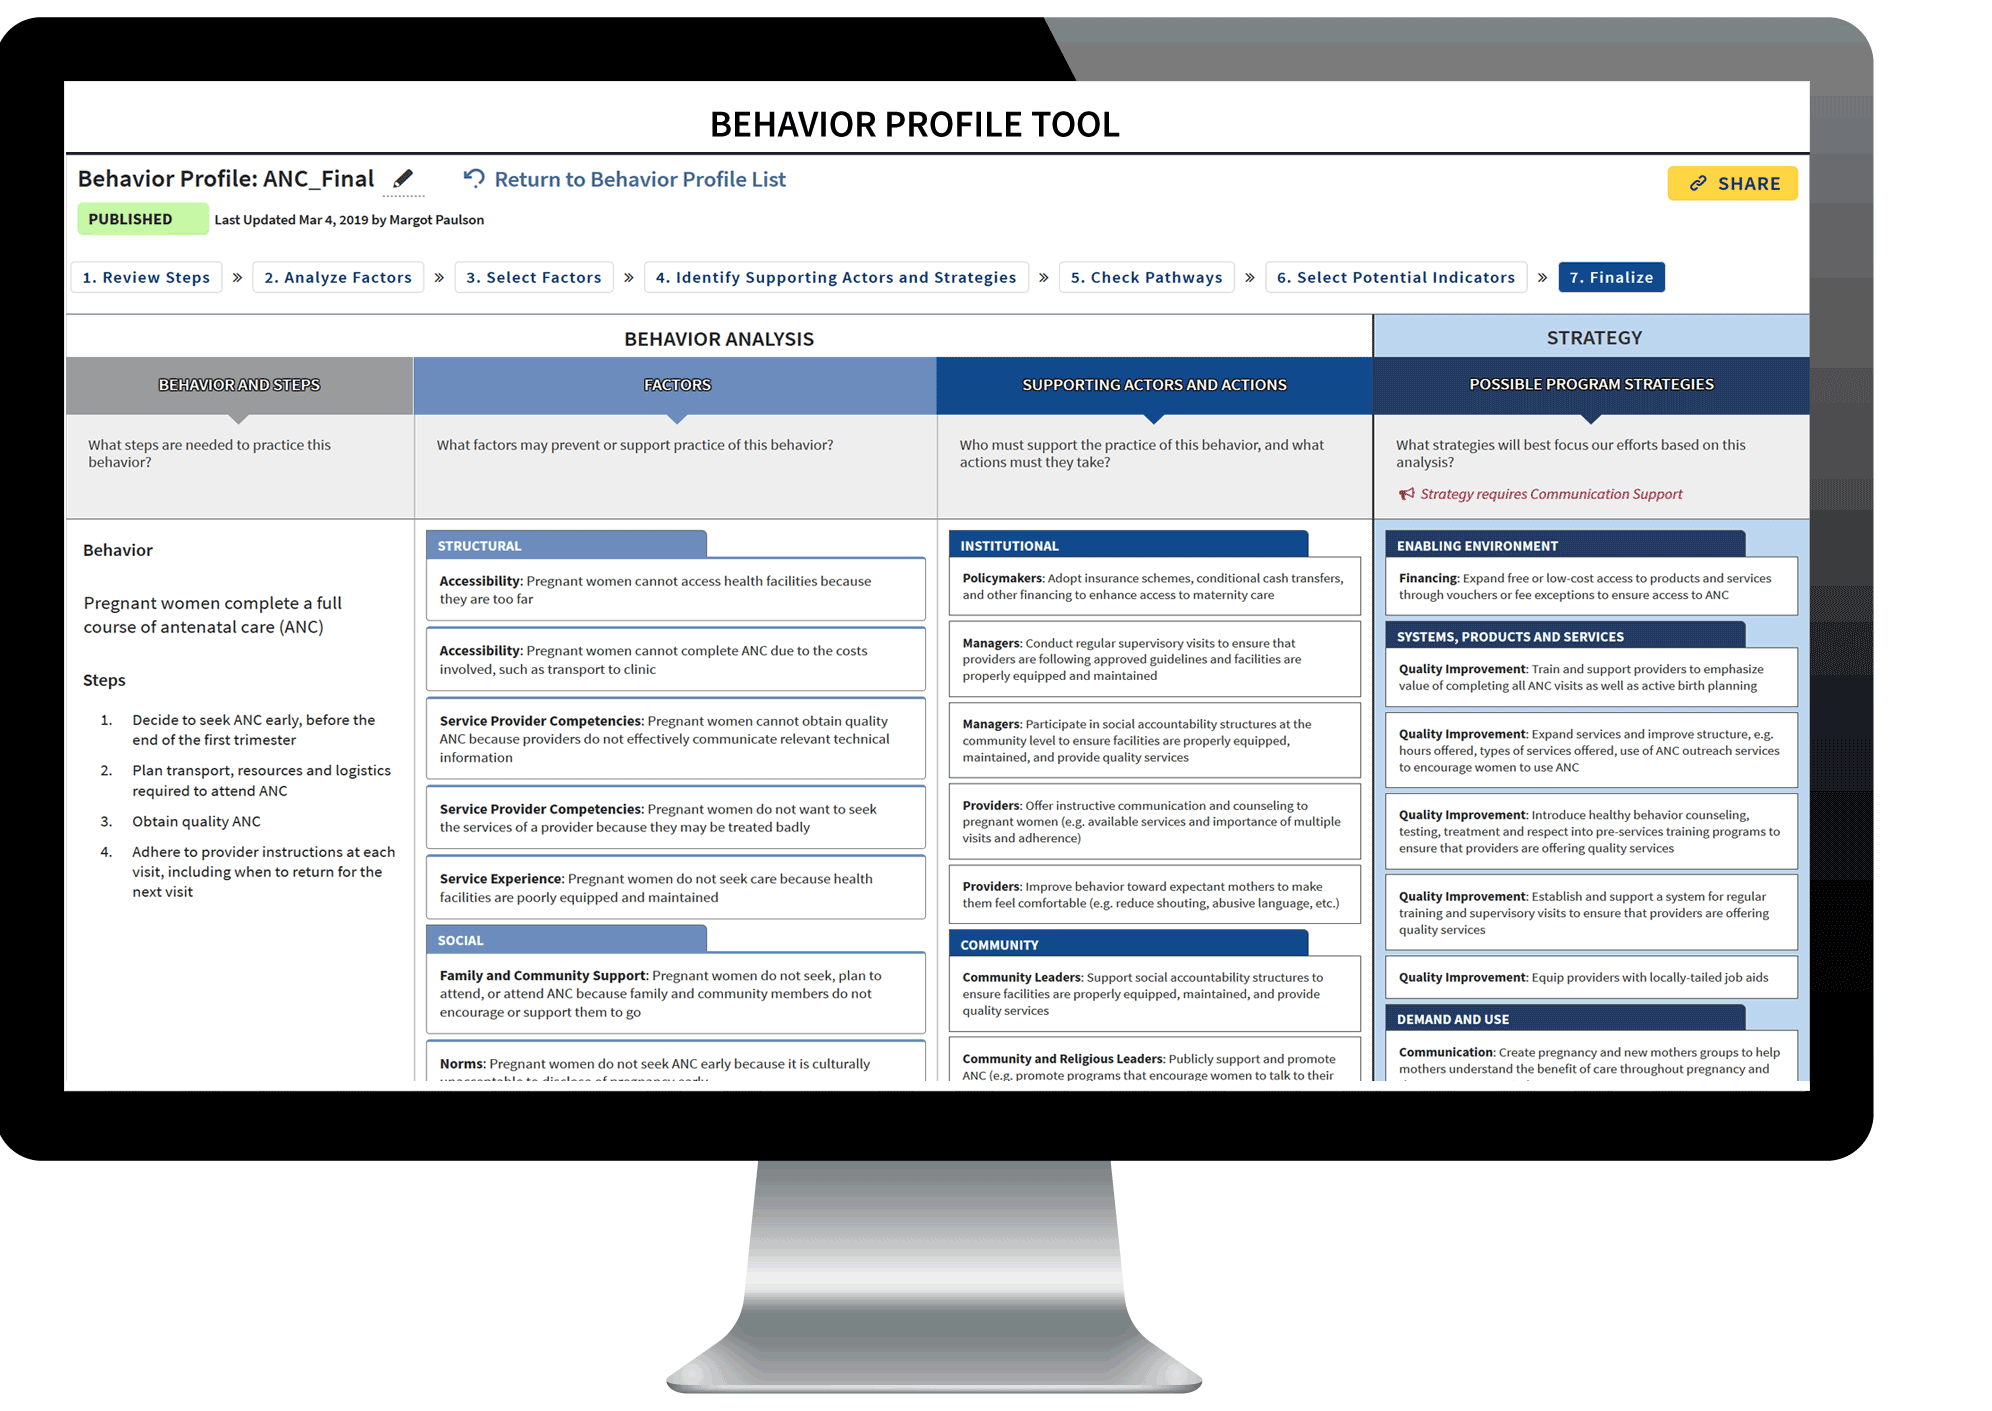 Behavior Profile Tool